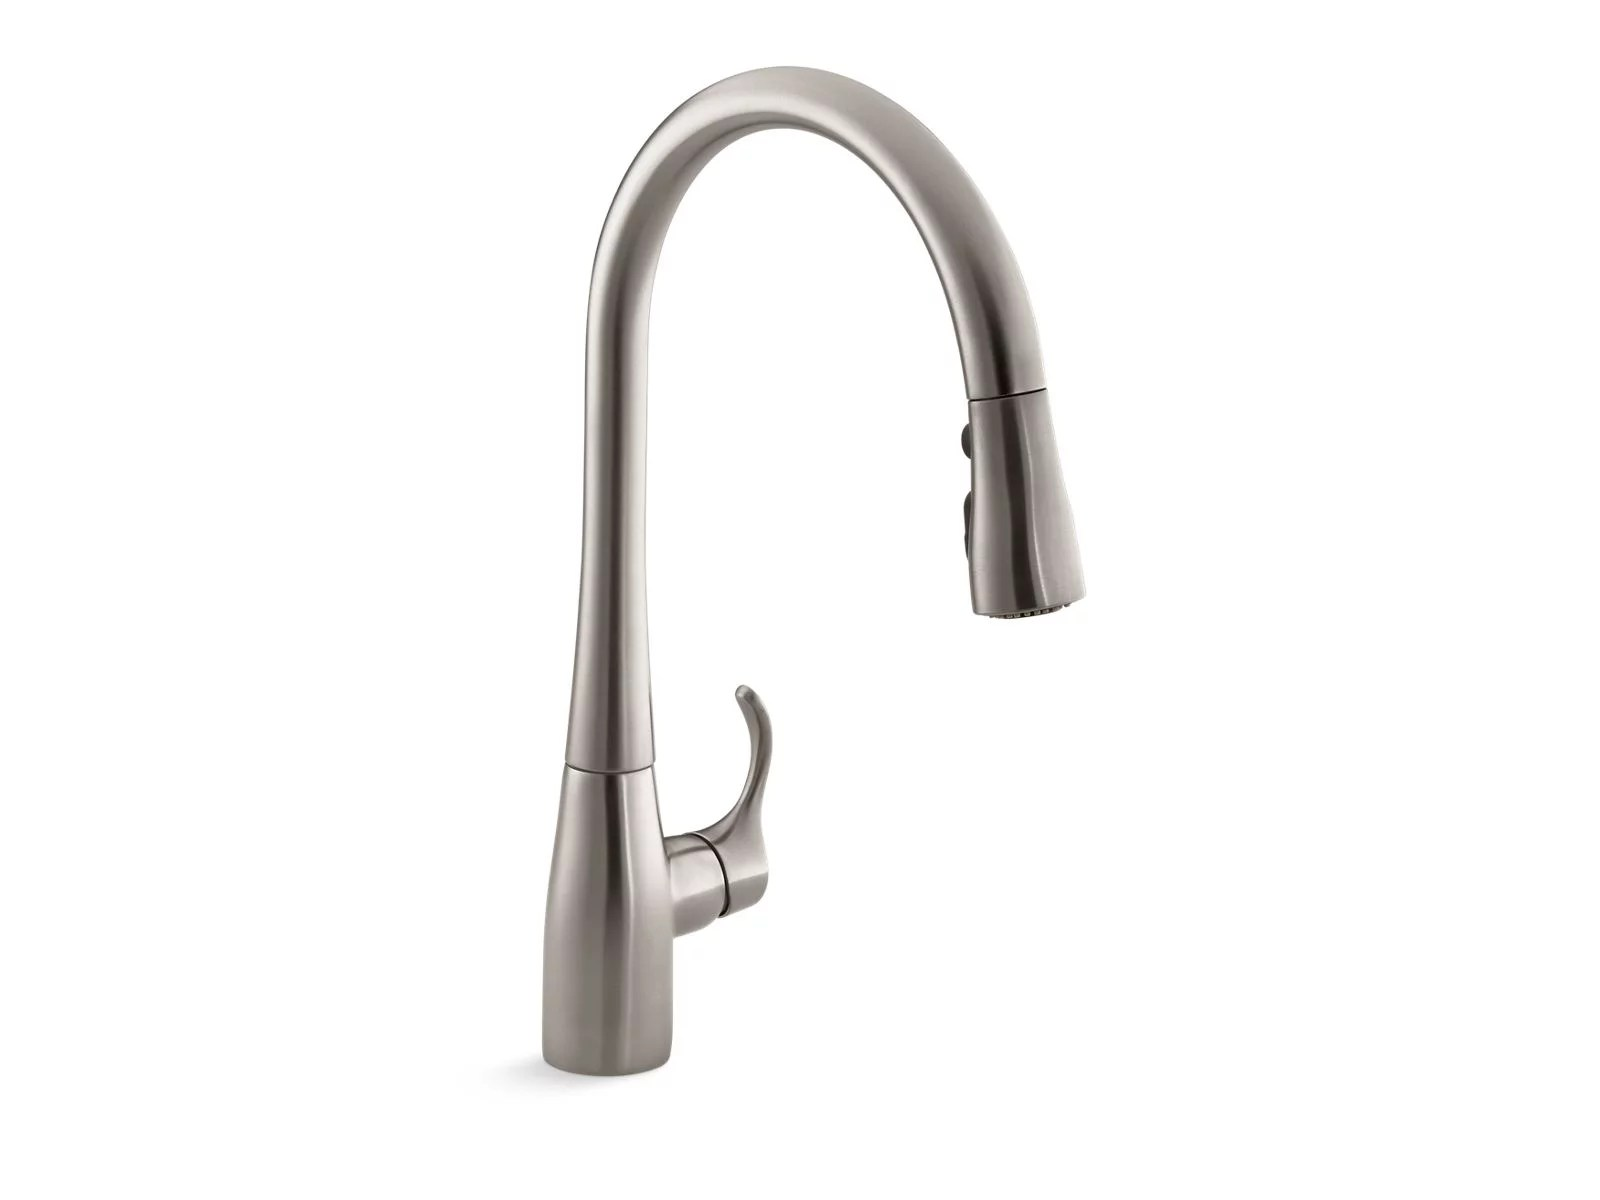 kohler simplice single hole or three hole kitchen sink faucet with 16 5 8 pull down spout docknetik magnetic docking system and a 3 function